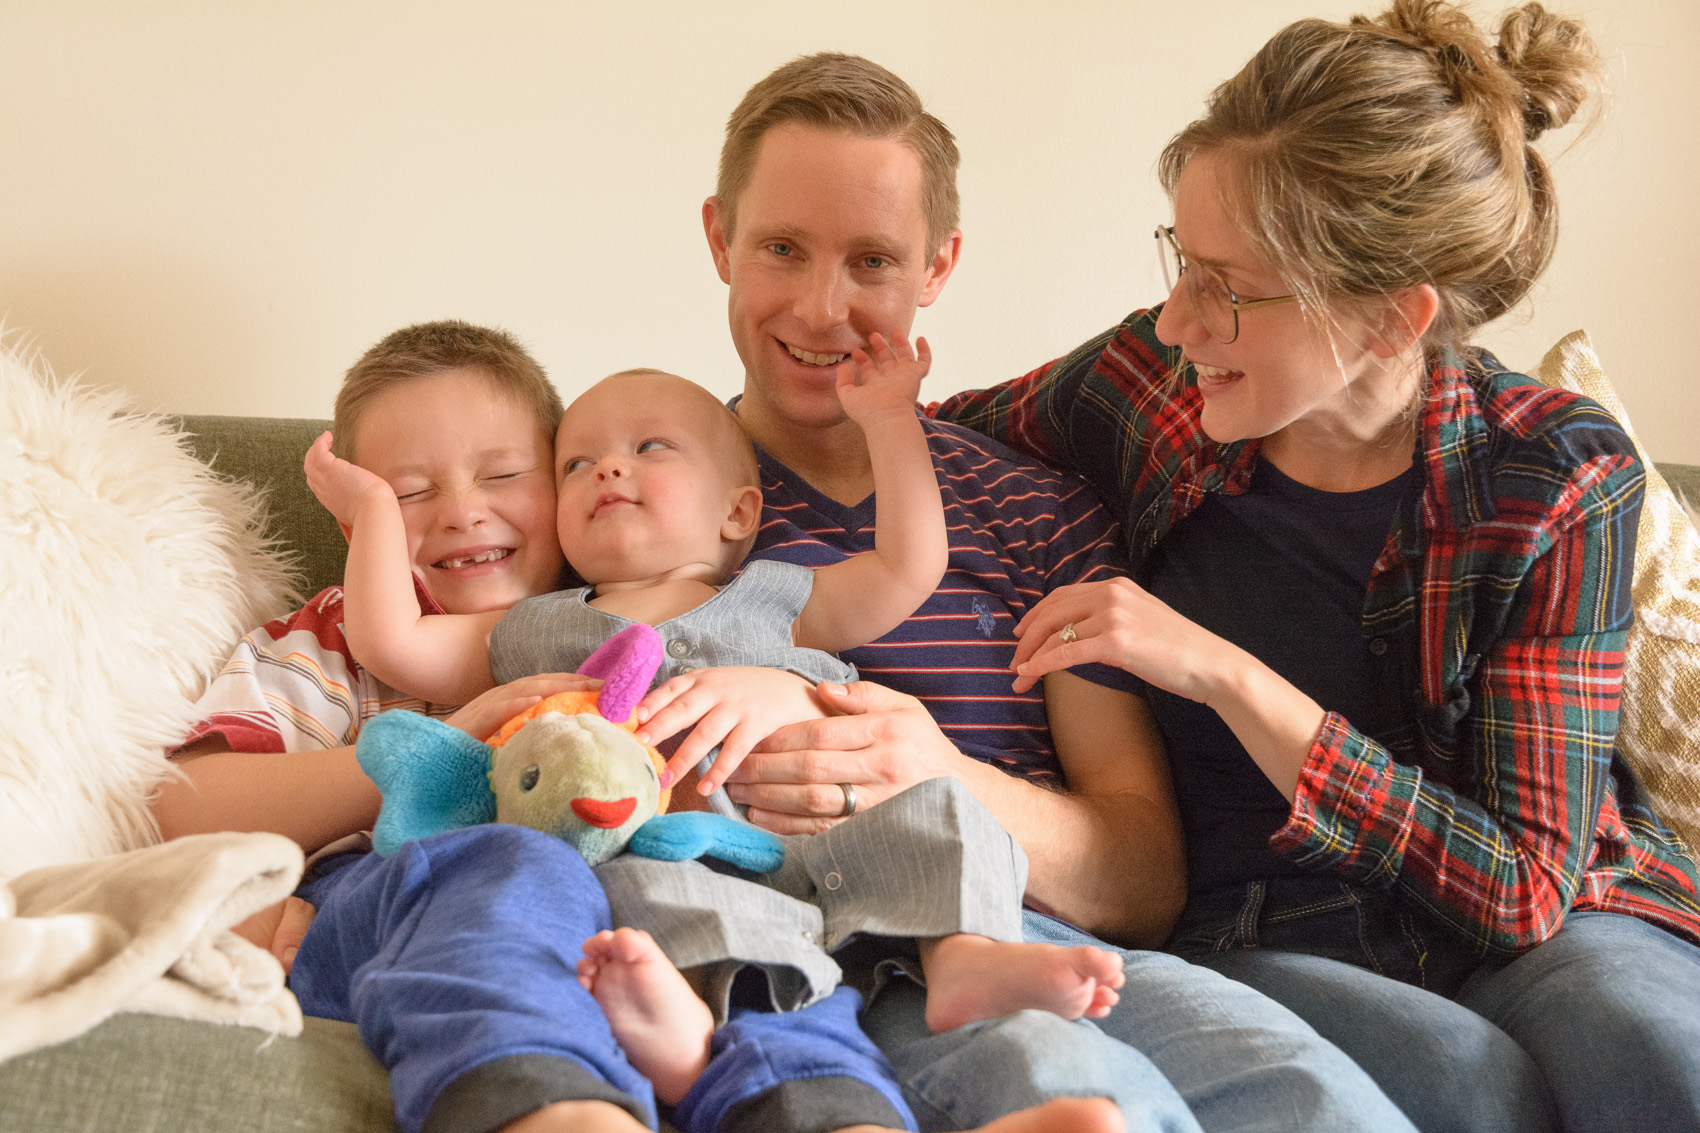 infant hugging brother and family on couch